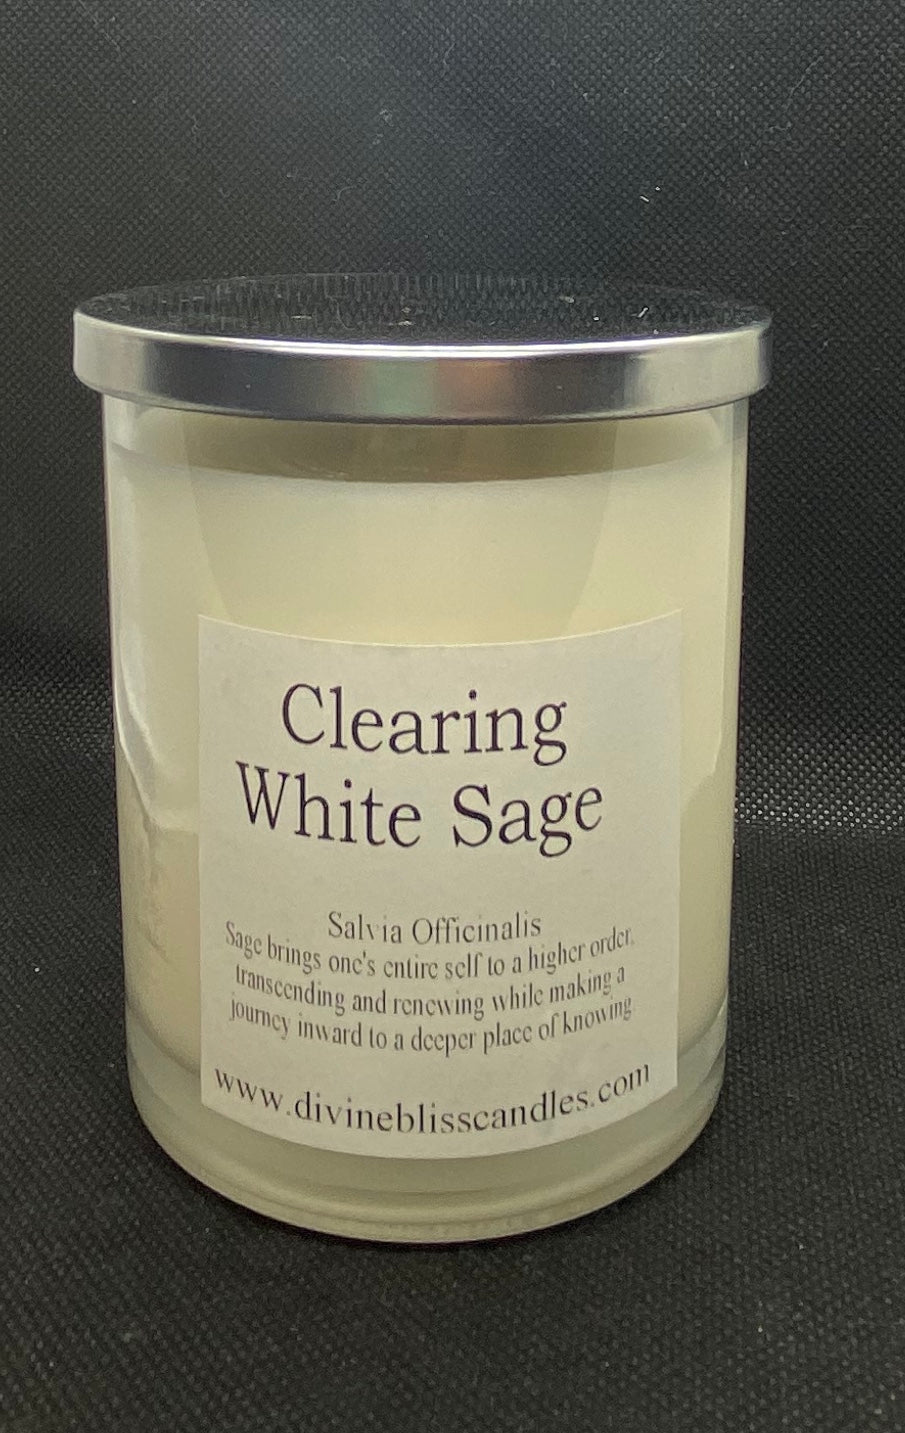 Clearing White Sage Candle